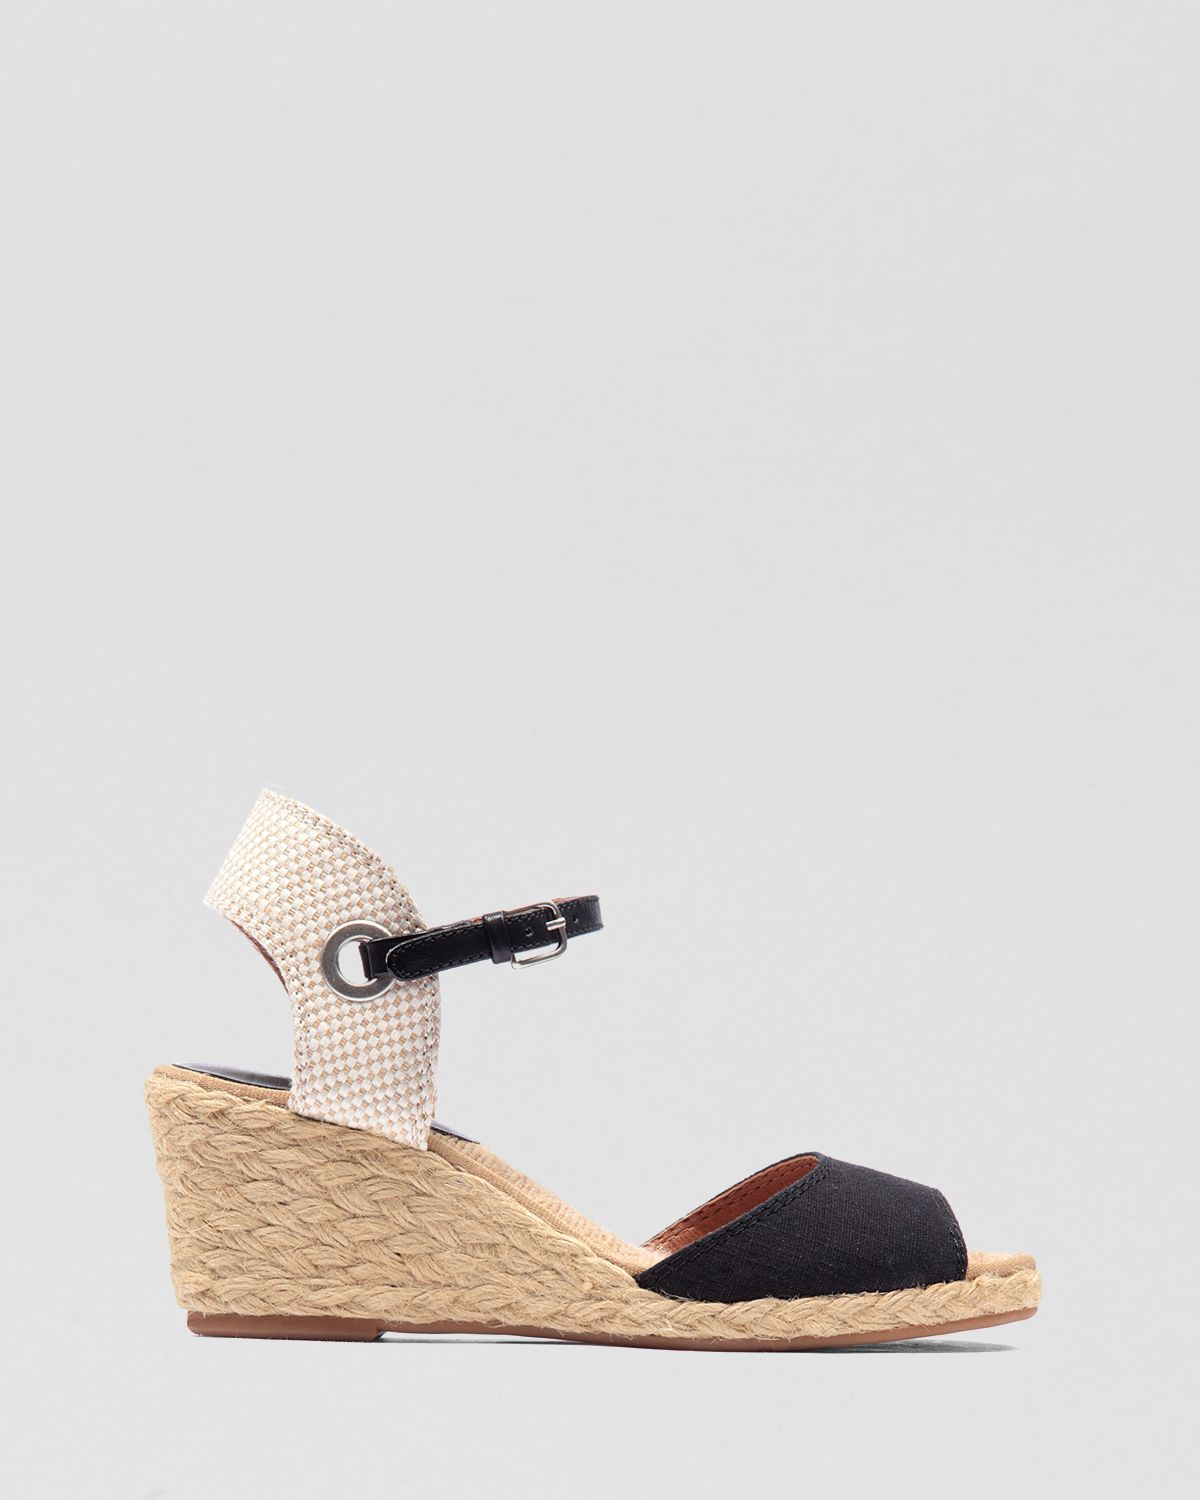 d2b18494c Lucky Brand Espadrille Wedge Sandals - Kyndra in Black - Lyst